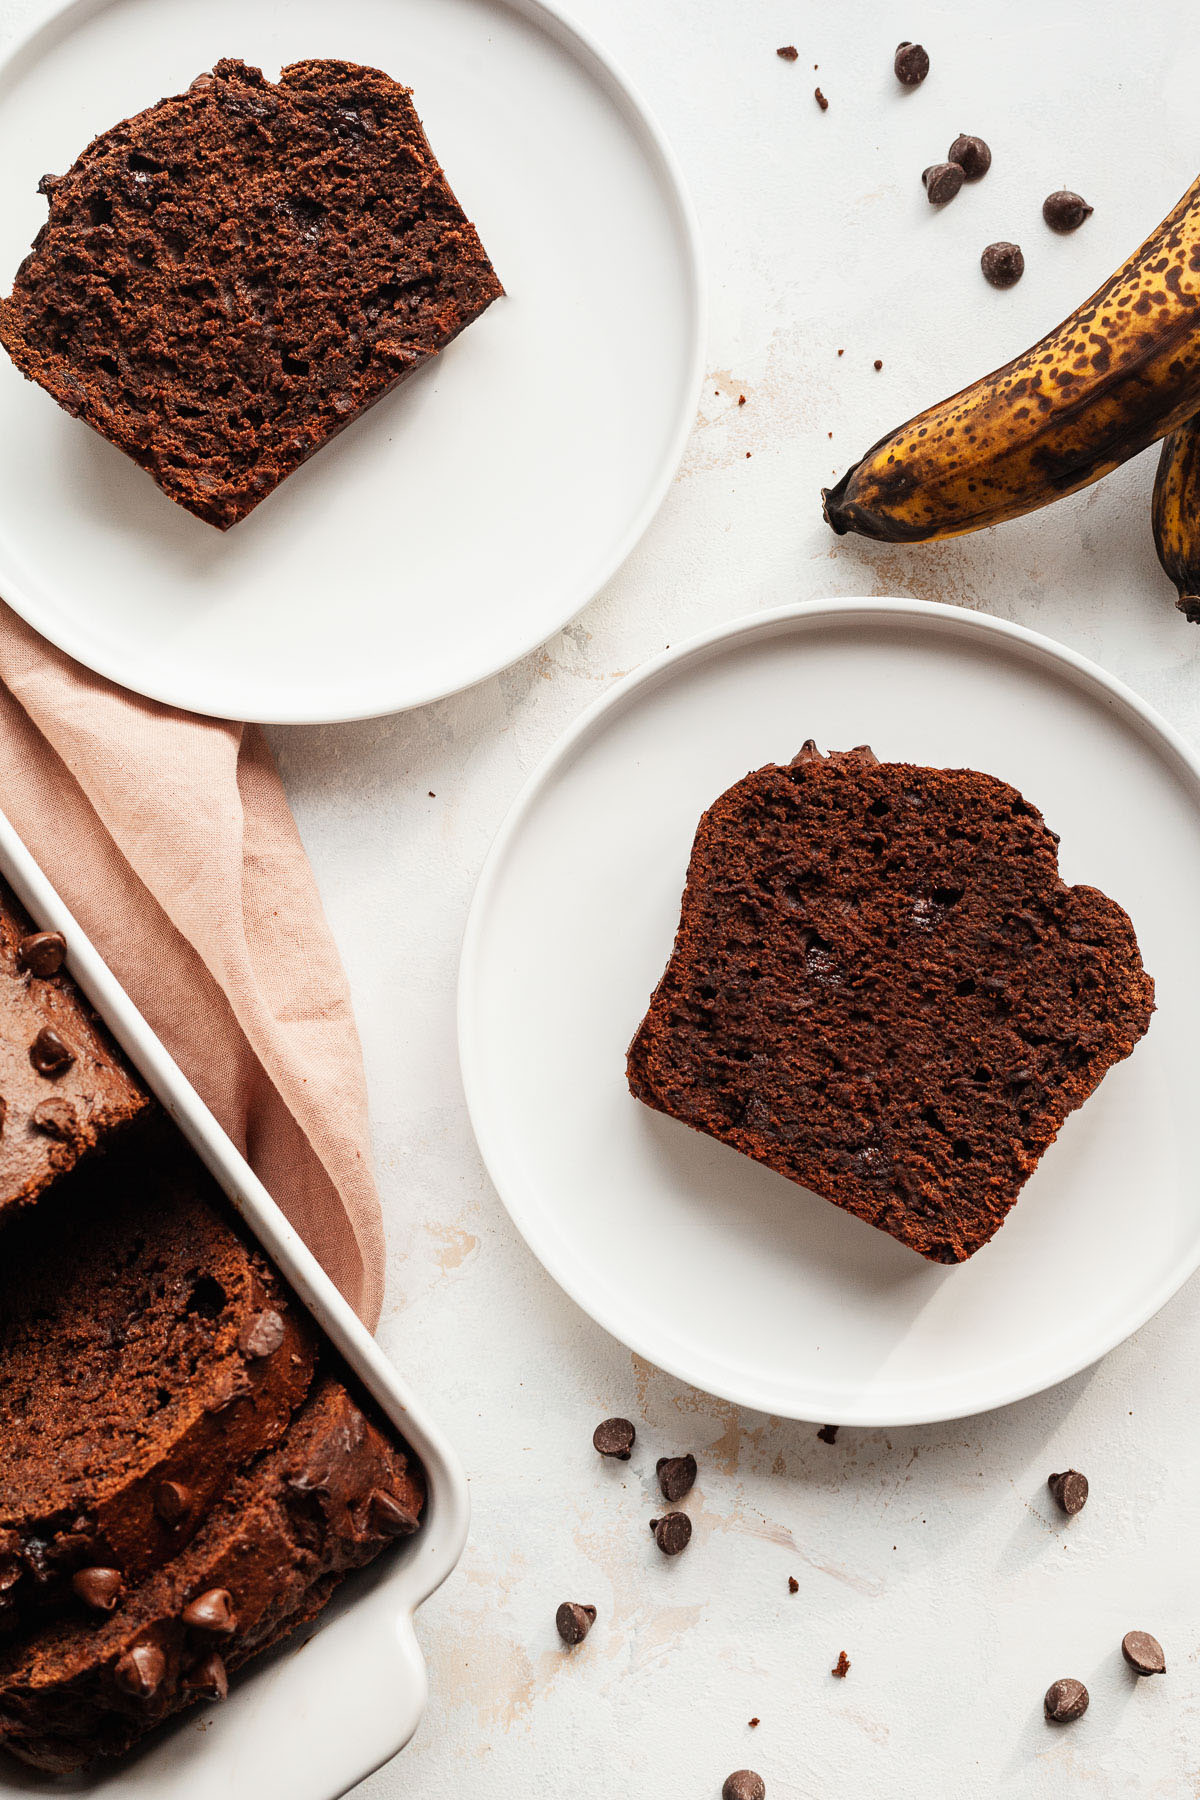 top view image of two white plates with sliced chocolate banana bread on them along with a ripe banana on table and chocolate banana bread in white pan